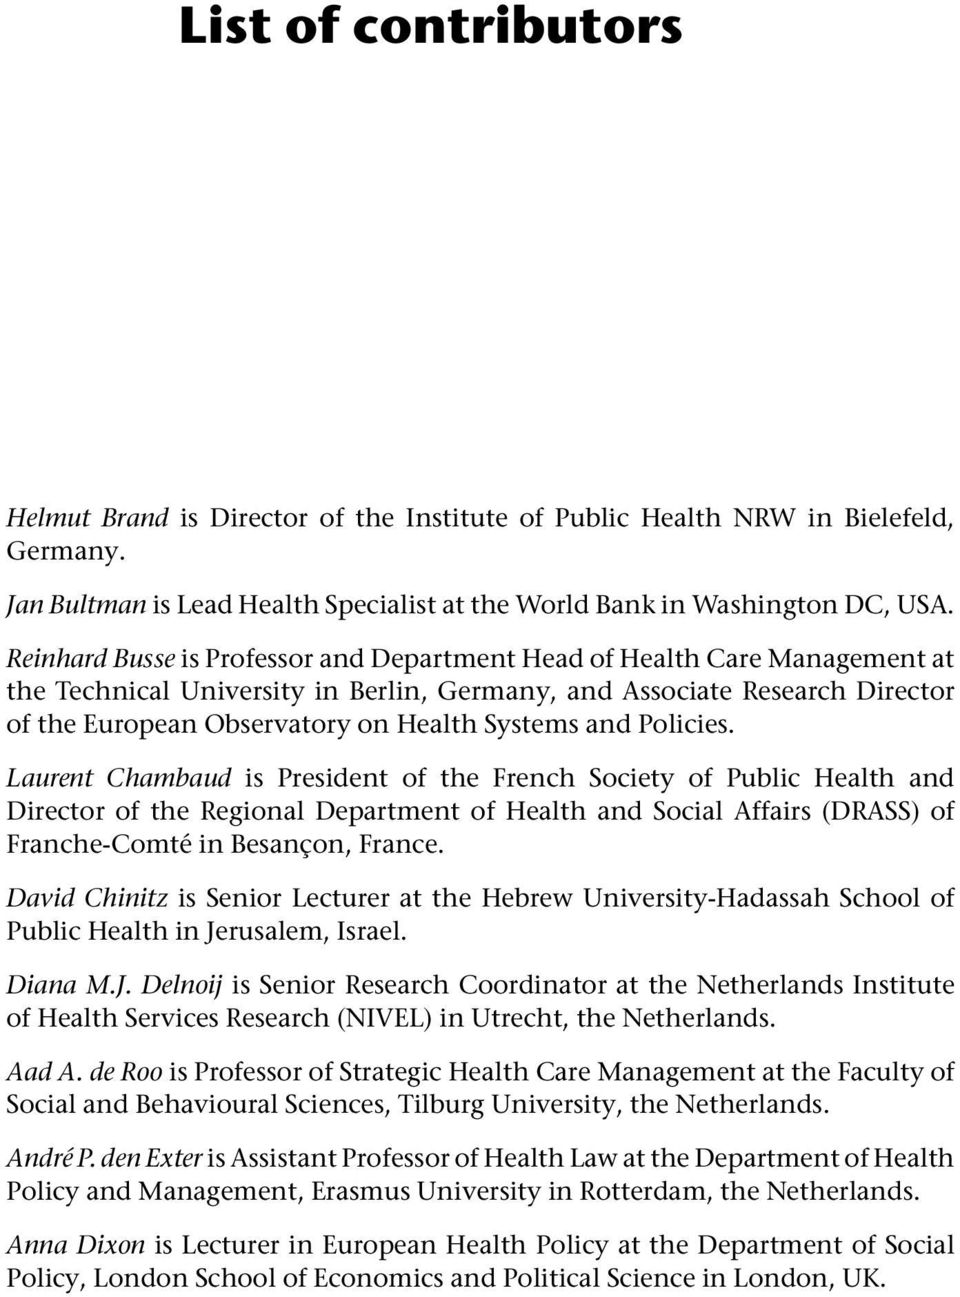 and Policies. Laurent Chambaud is President of the French Society of Public Health and Director of the Regional Department of Health and Social Affairs (DRASS) of Franche-Comté in Besançon, France.